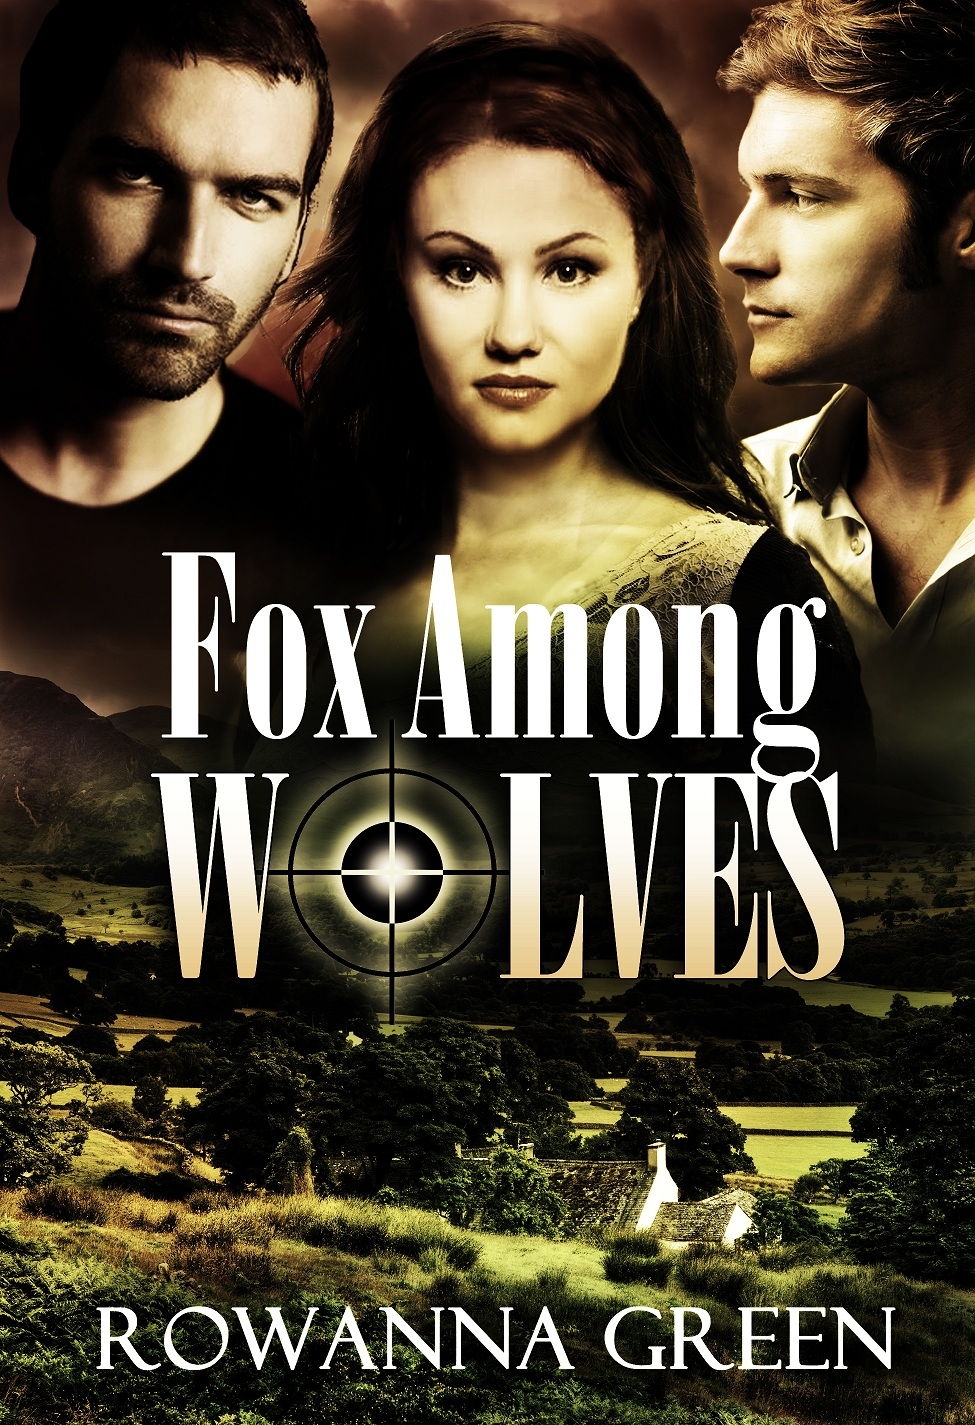 foxamongwolves-061414 50pc.jpg